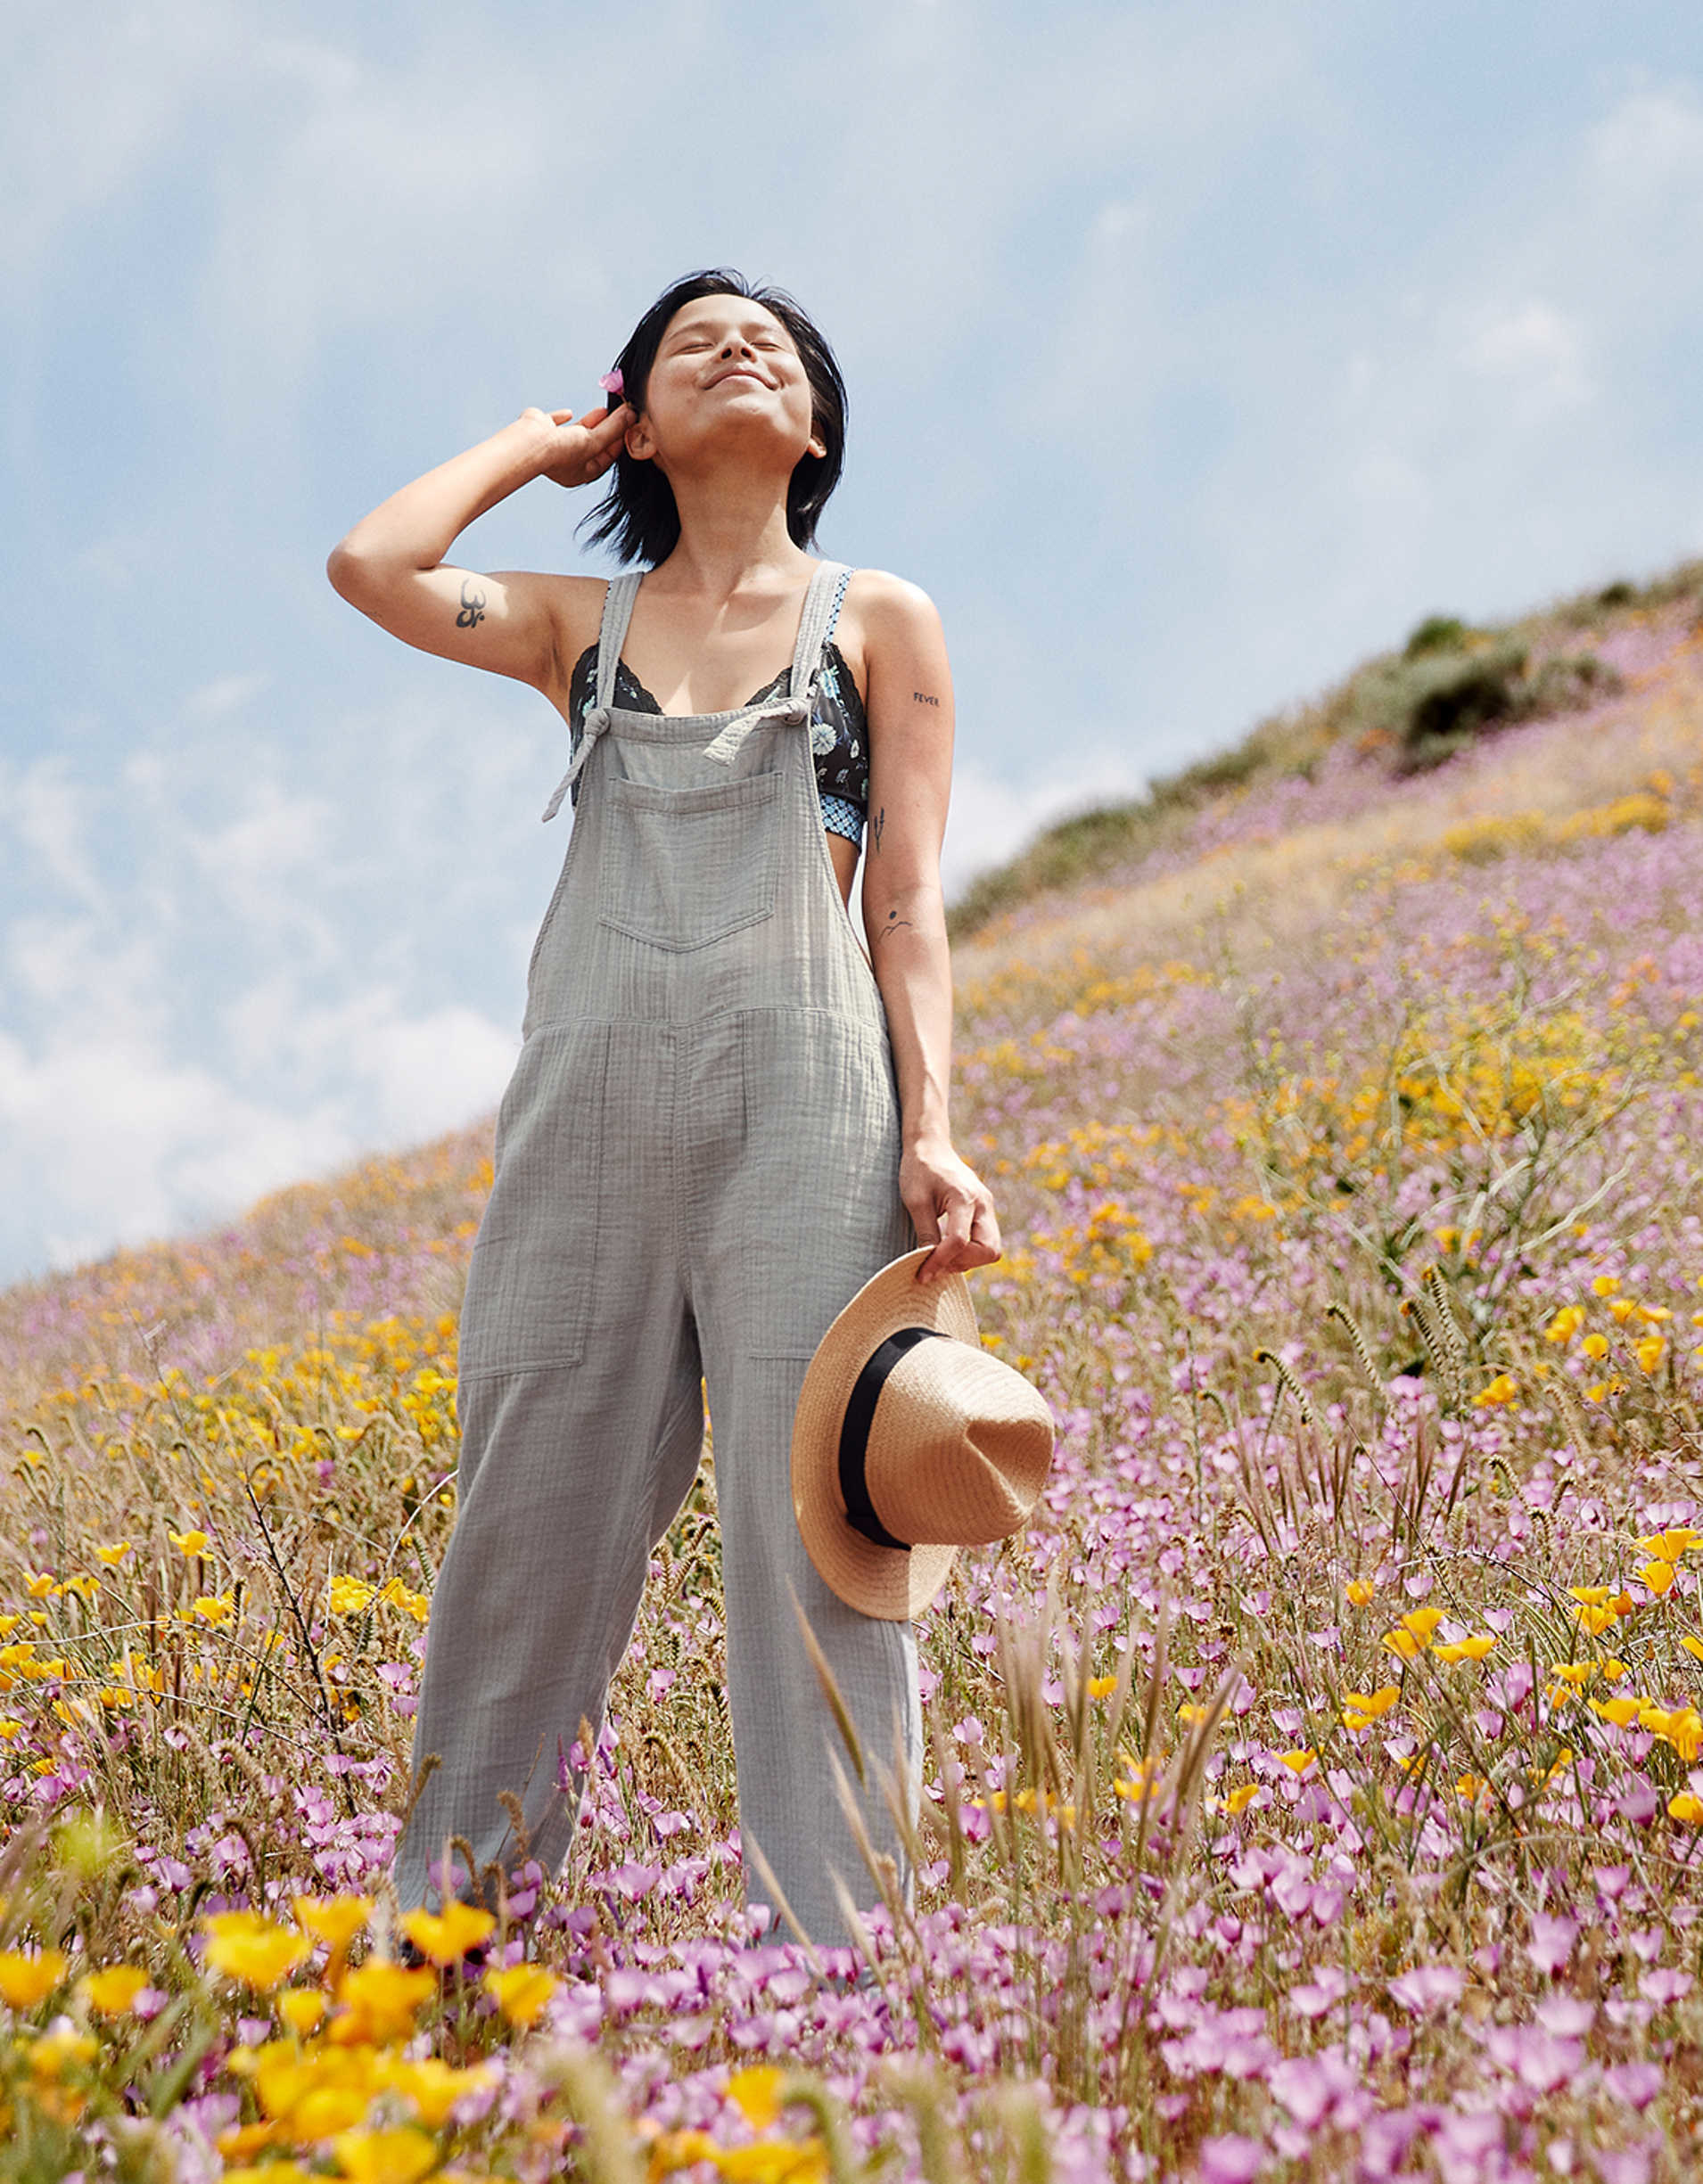 Model wearing the overalls in gray